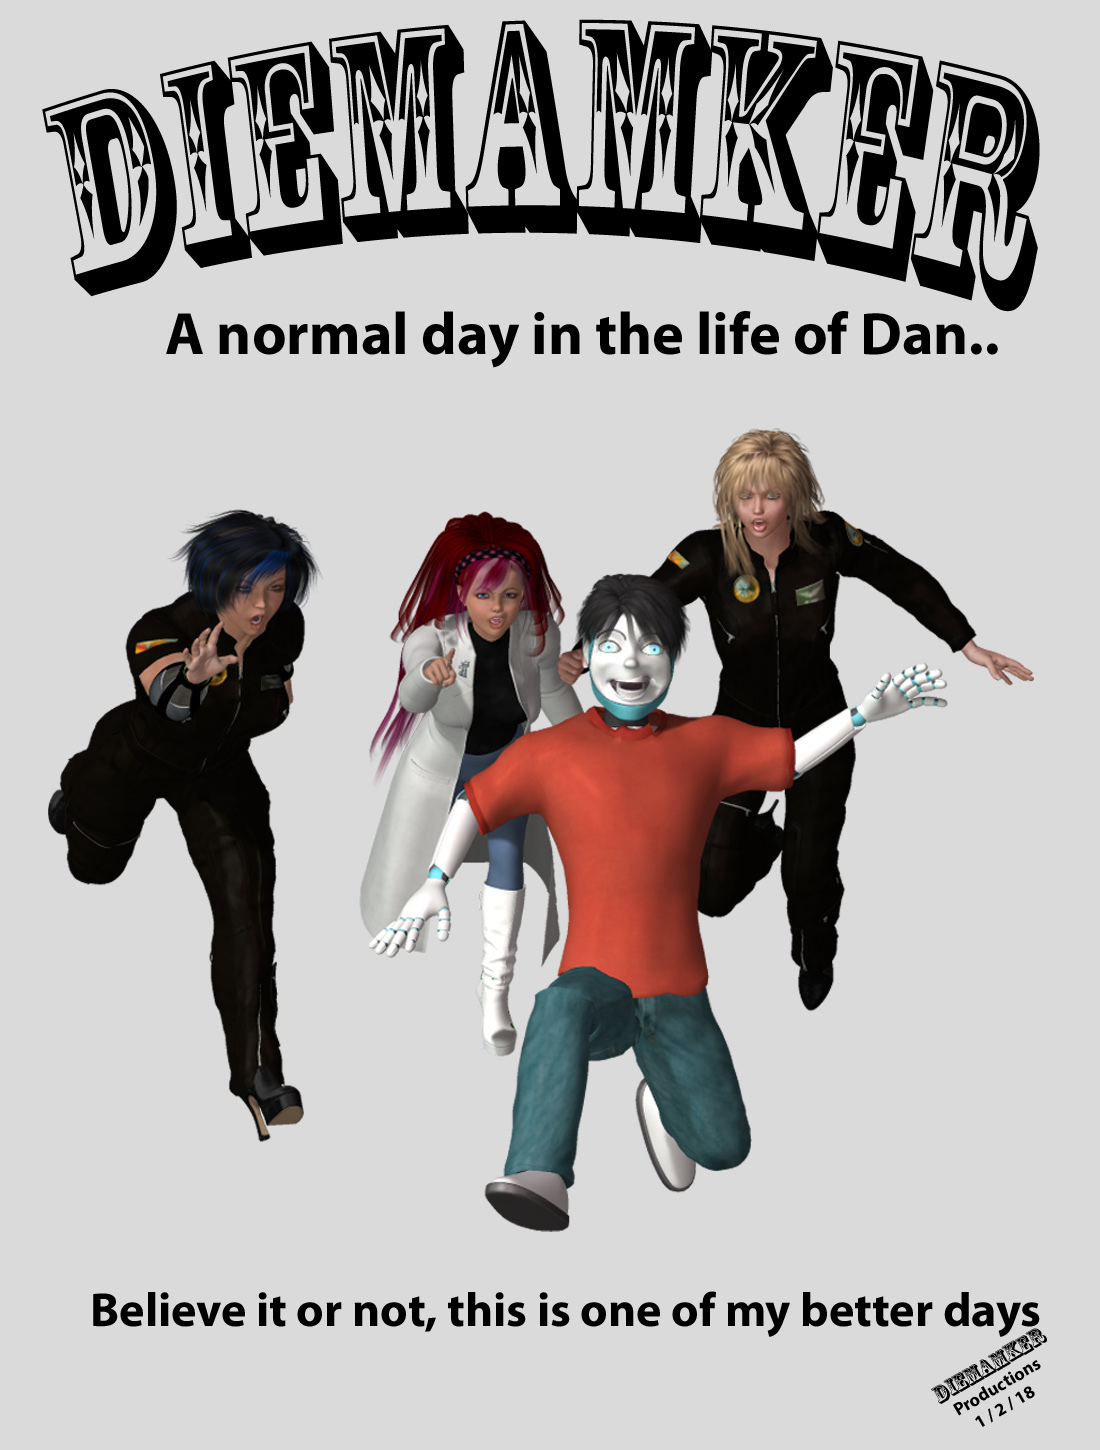 A normal day in the life of Dan... Cover art.. by Diemamker